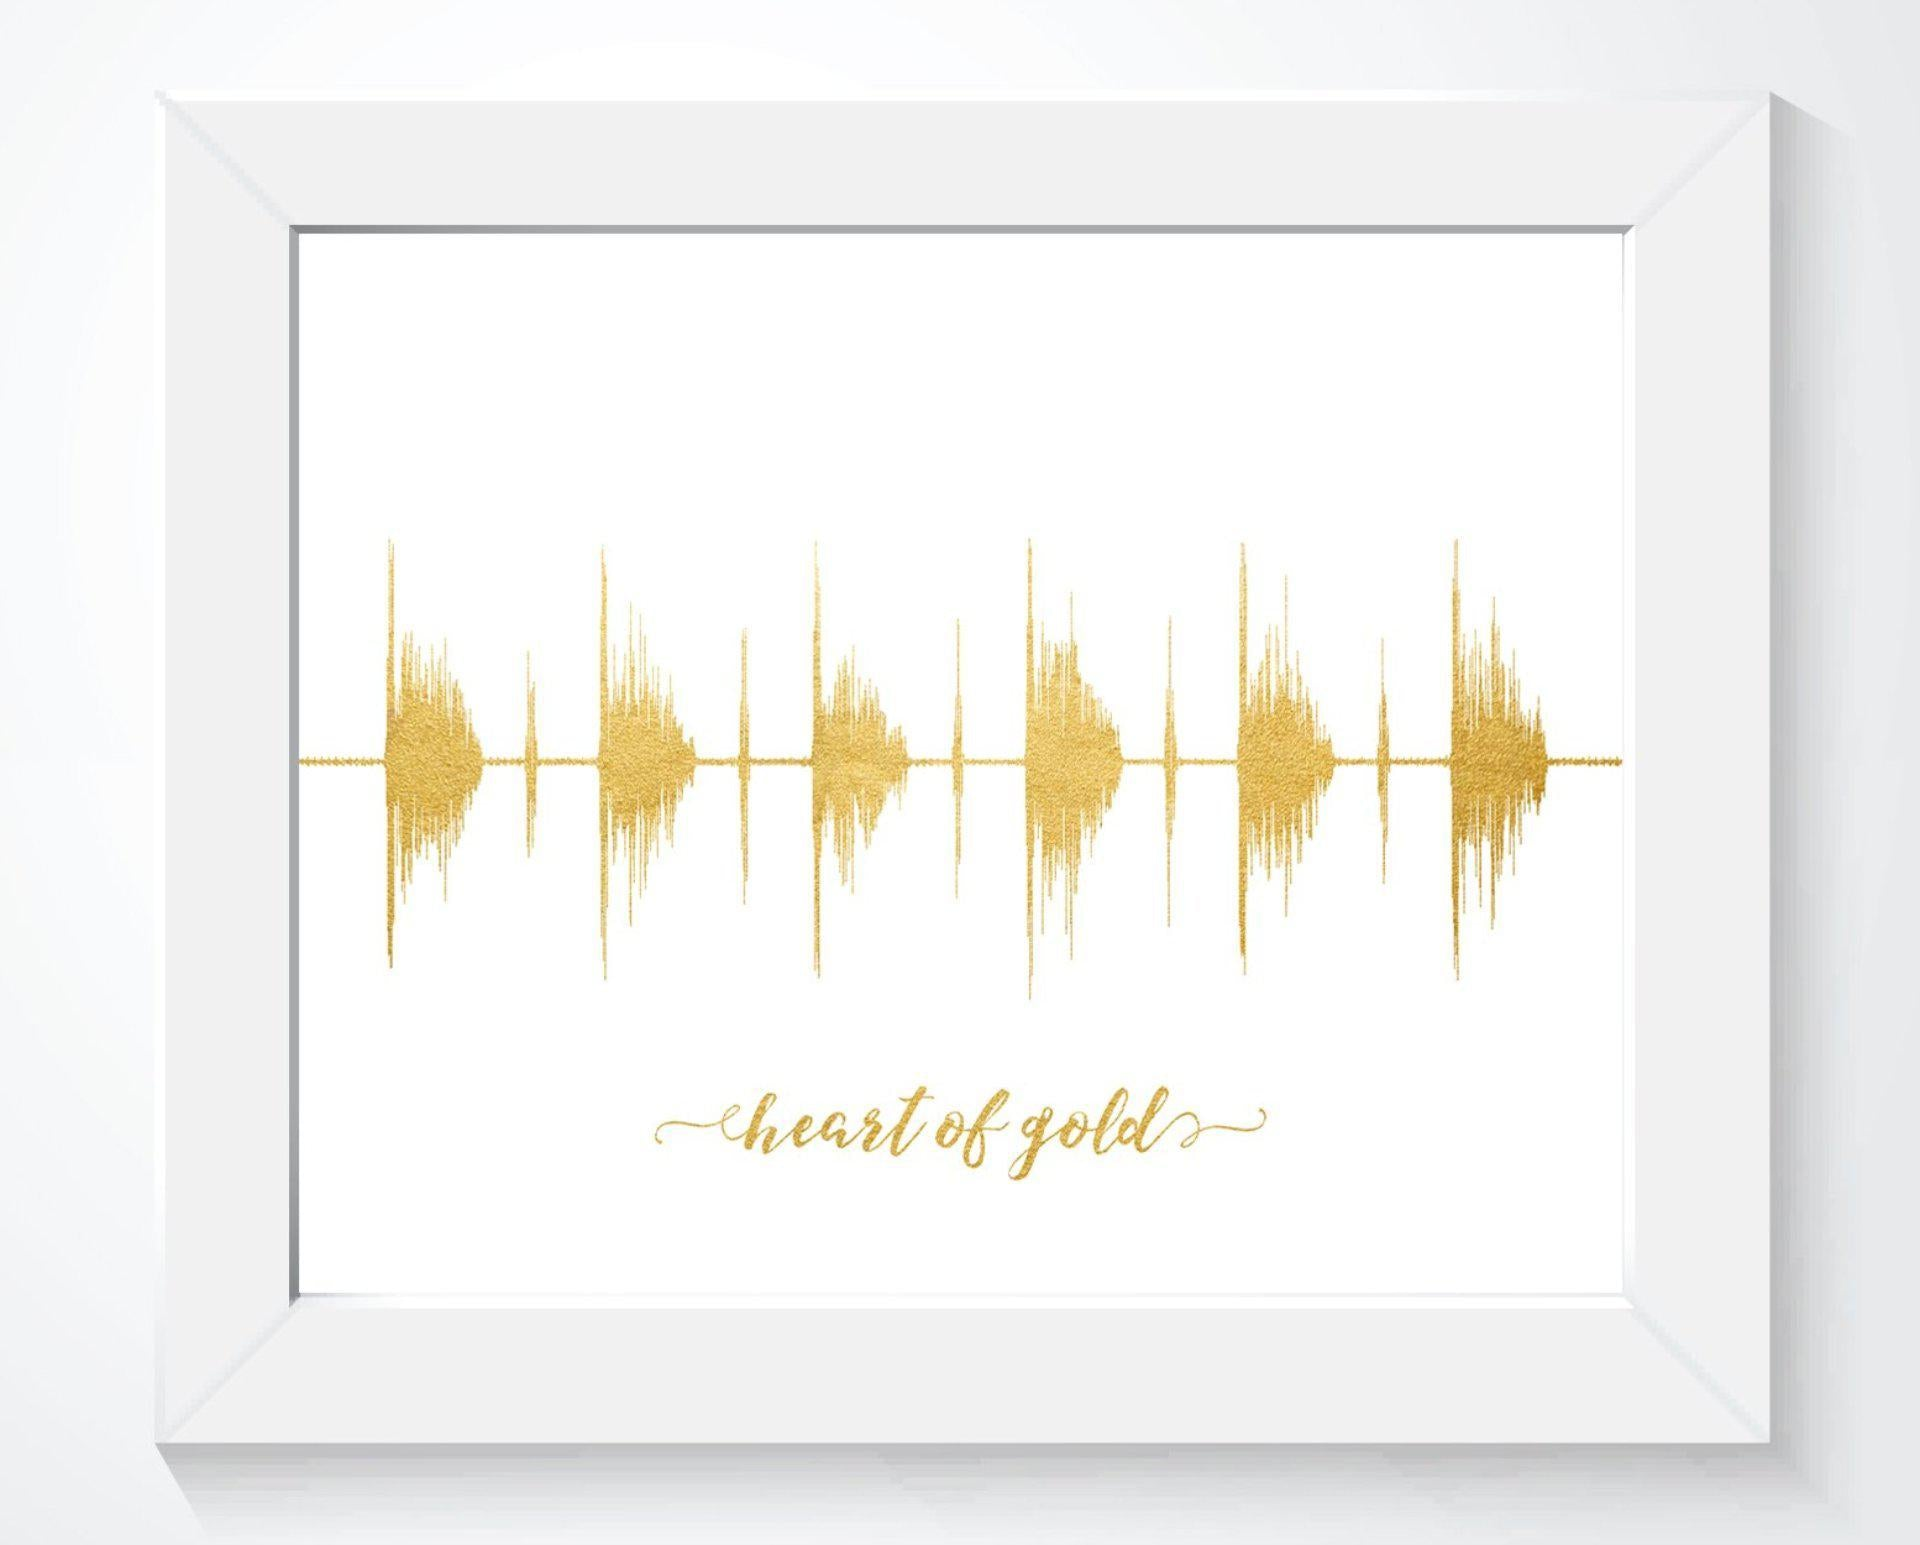 Heart of Gold - Gold Foil Effect Sound Wave Art Print - Artsy Voiceprint